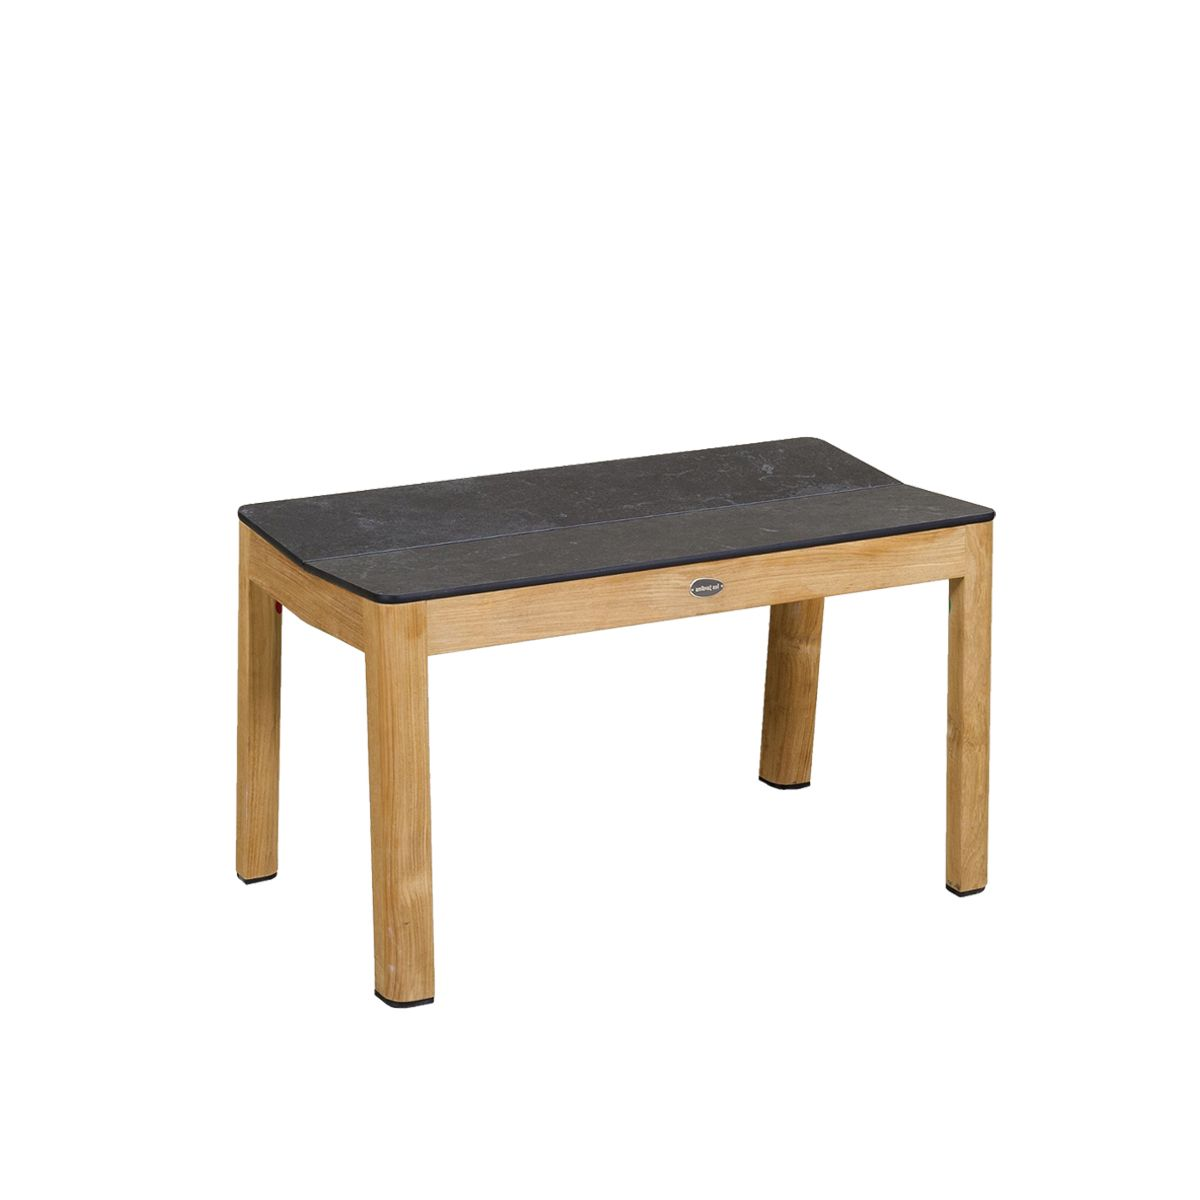 Banc de table small tekura for Le jardin d ulysse meubles